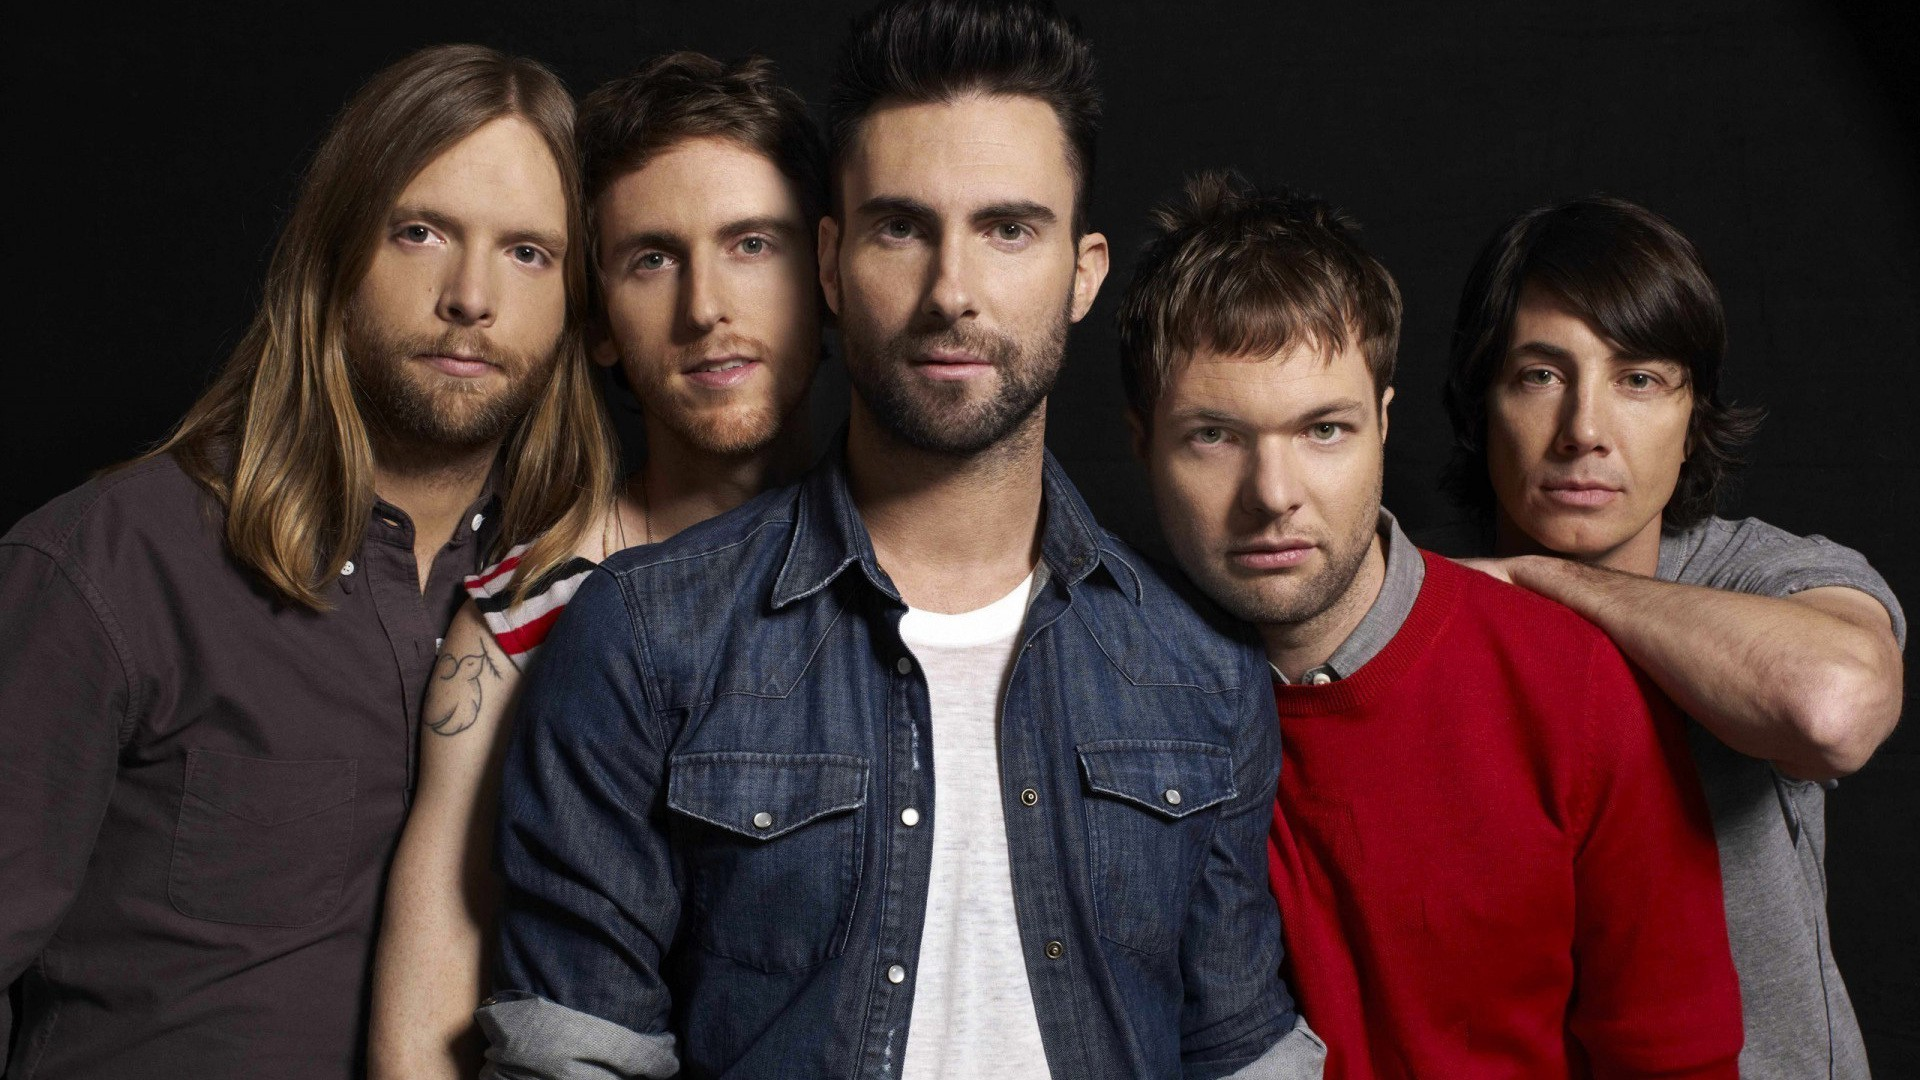 Image result for maroon 5 images